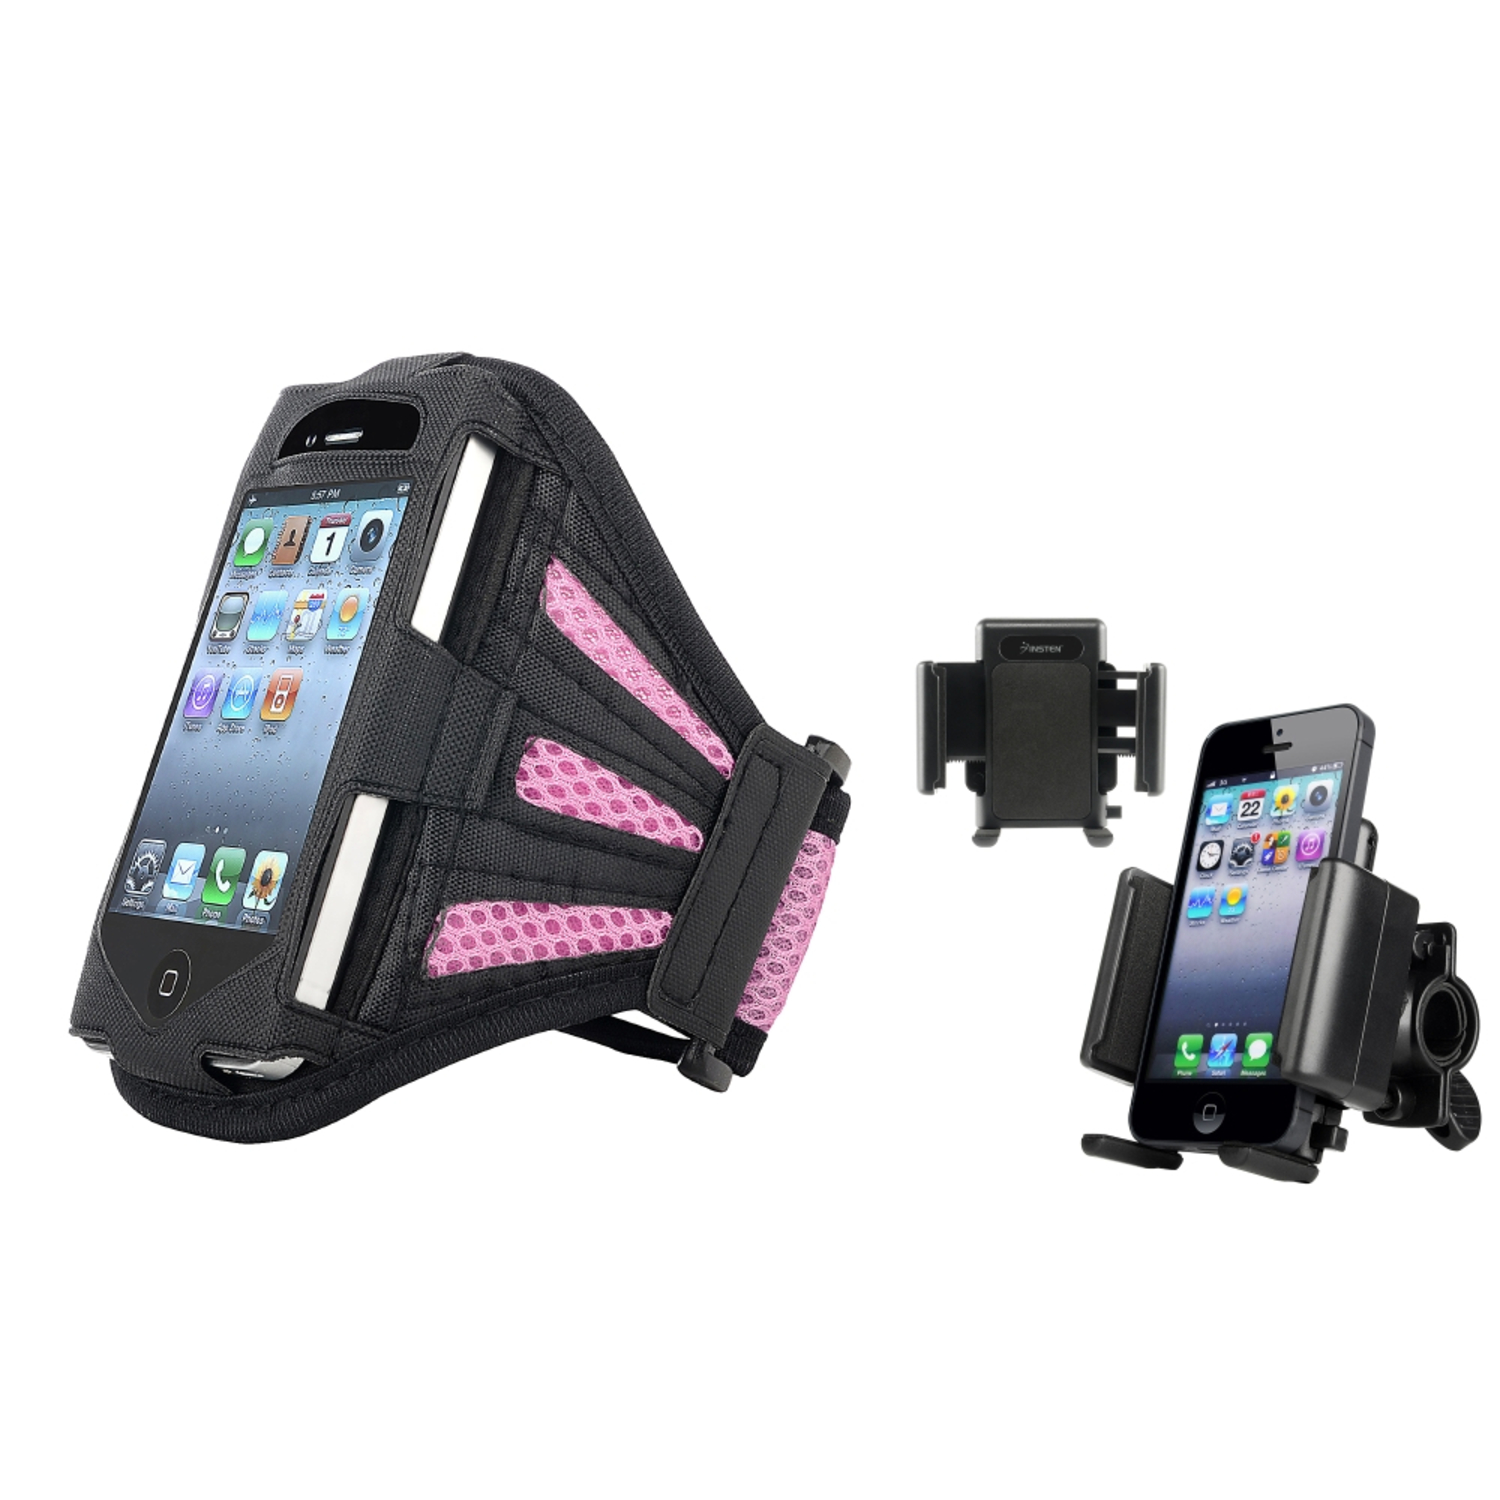 Insten Sport Combo Bicycle Holder+GYM ARM BAND CASE COVER PINK For Apple iPhone 3G S 3GS